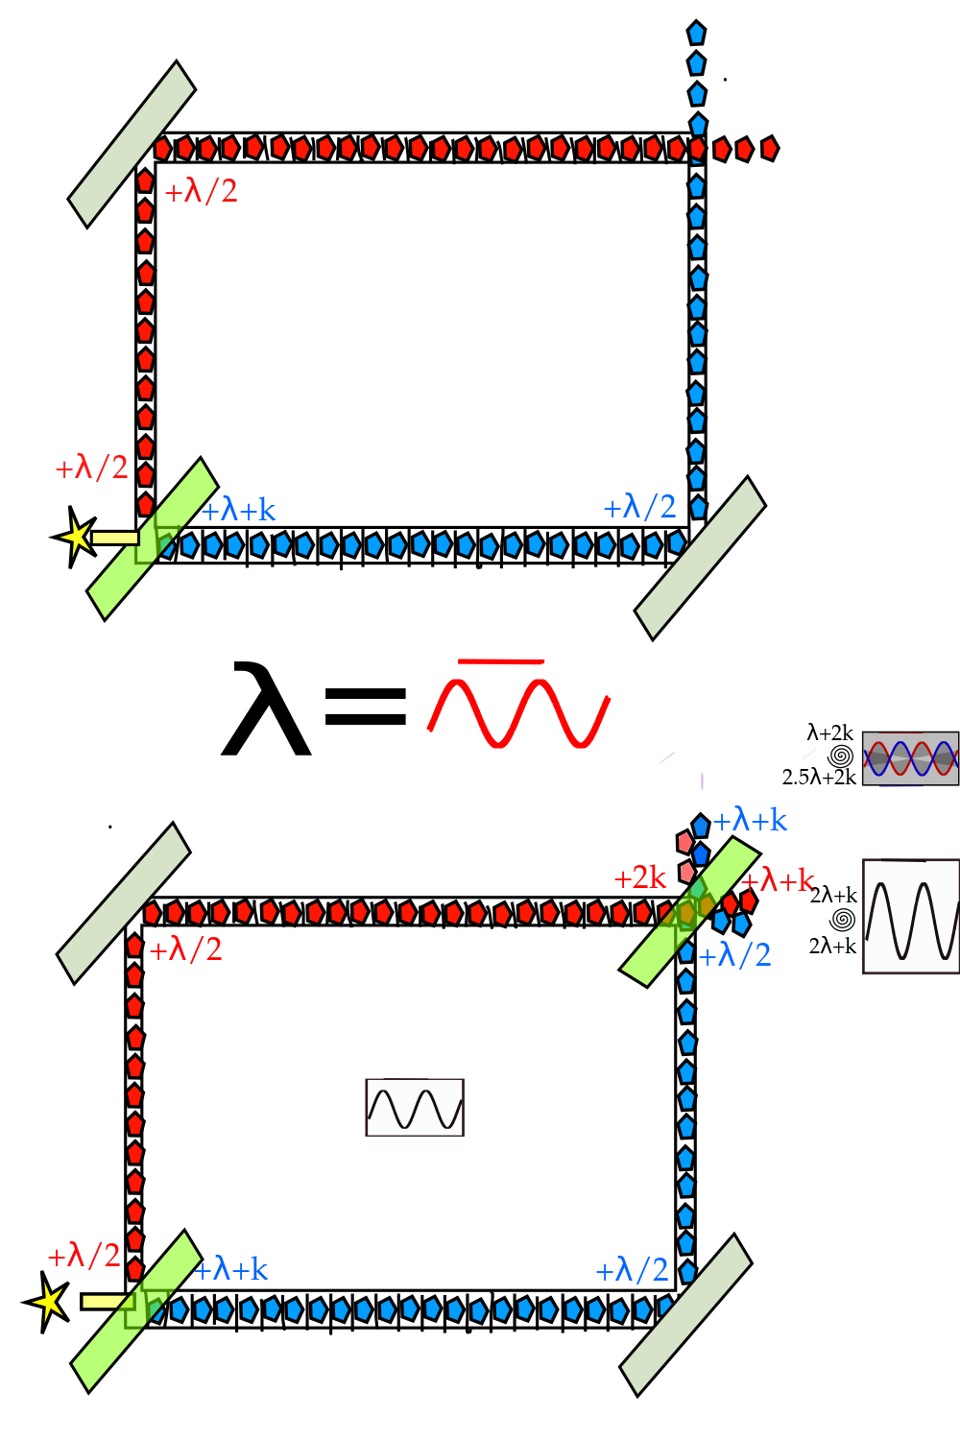 This image illustrates one of Wheeler's delayed-choice experiments.